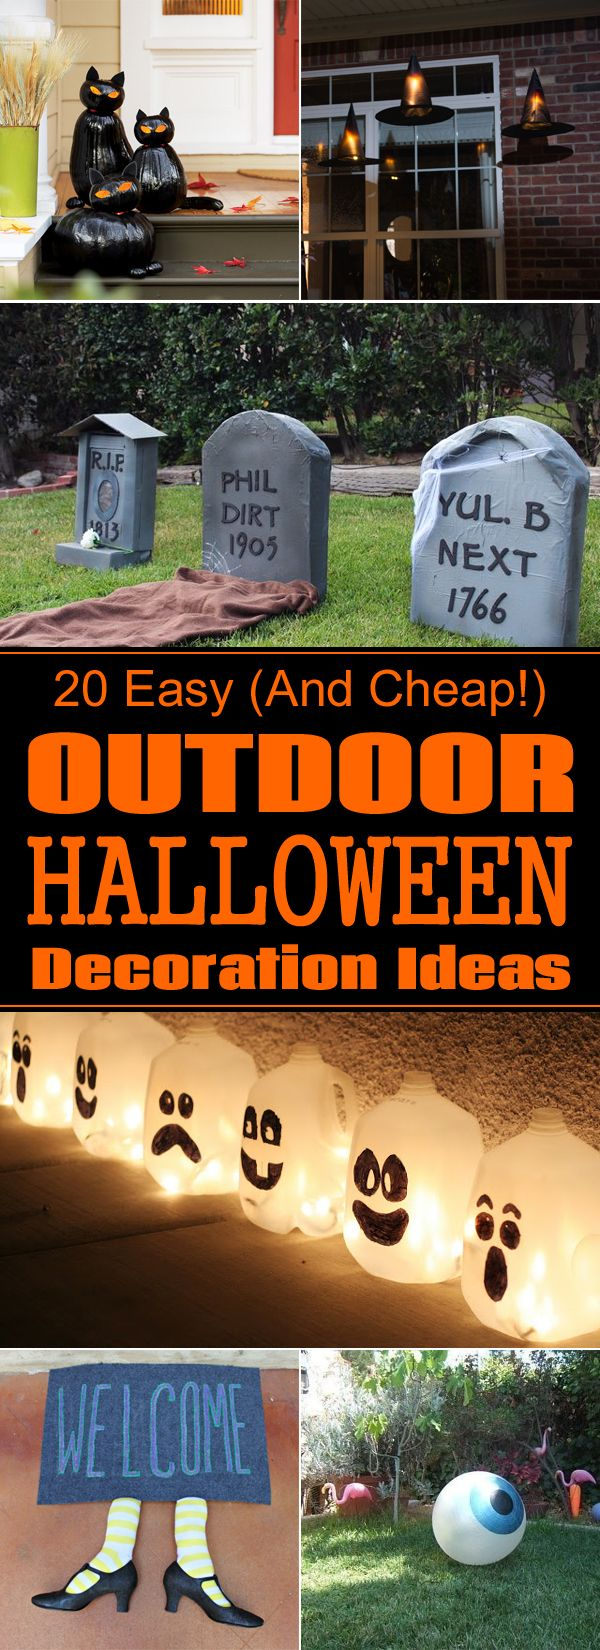 Handmade DIY Halloween Decorations For Outside